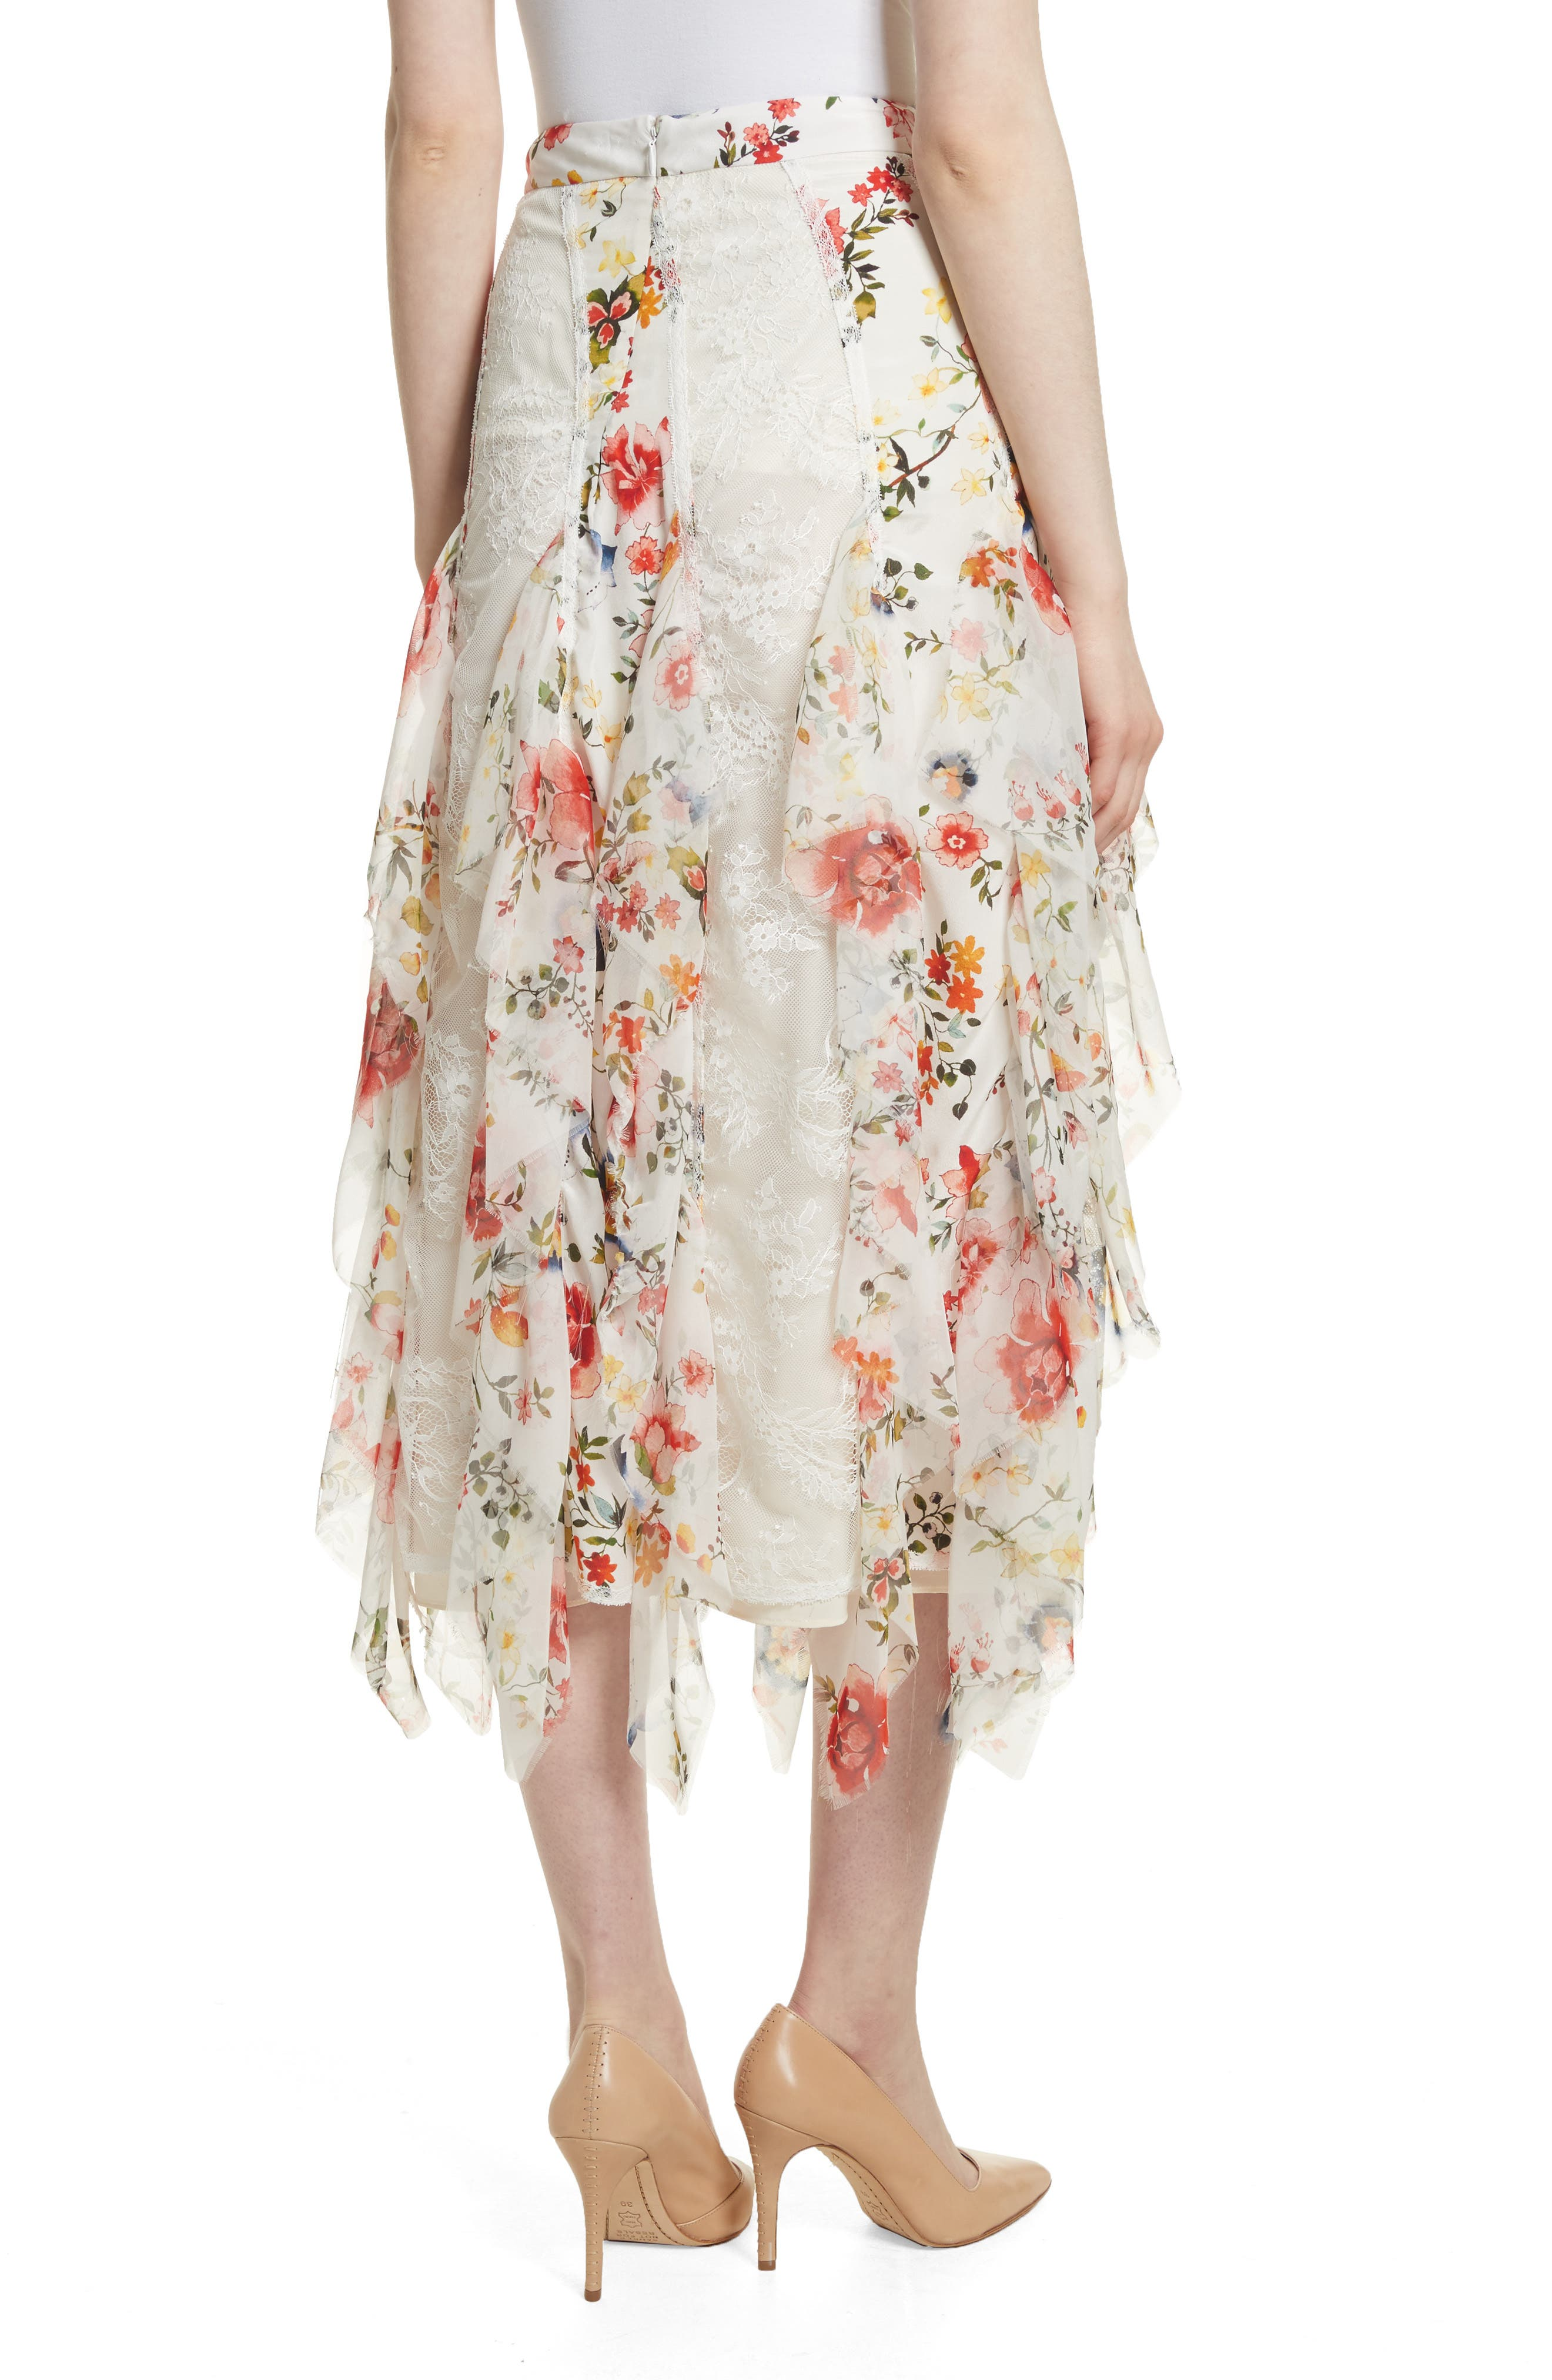 Yula Floral Silk & Lace Midi Skirt,                             Alternate thumbnail 2, color,                             Floral Soiree-Soft White